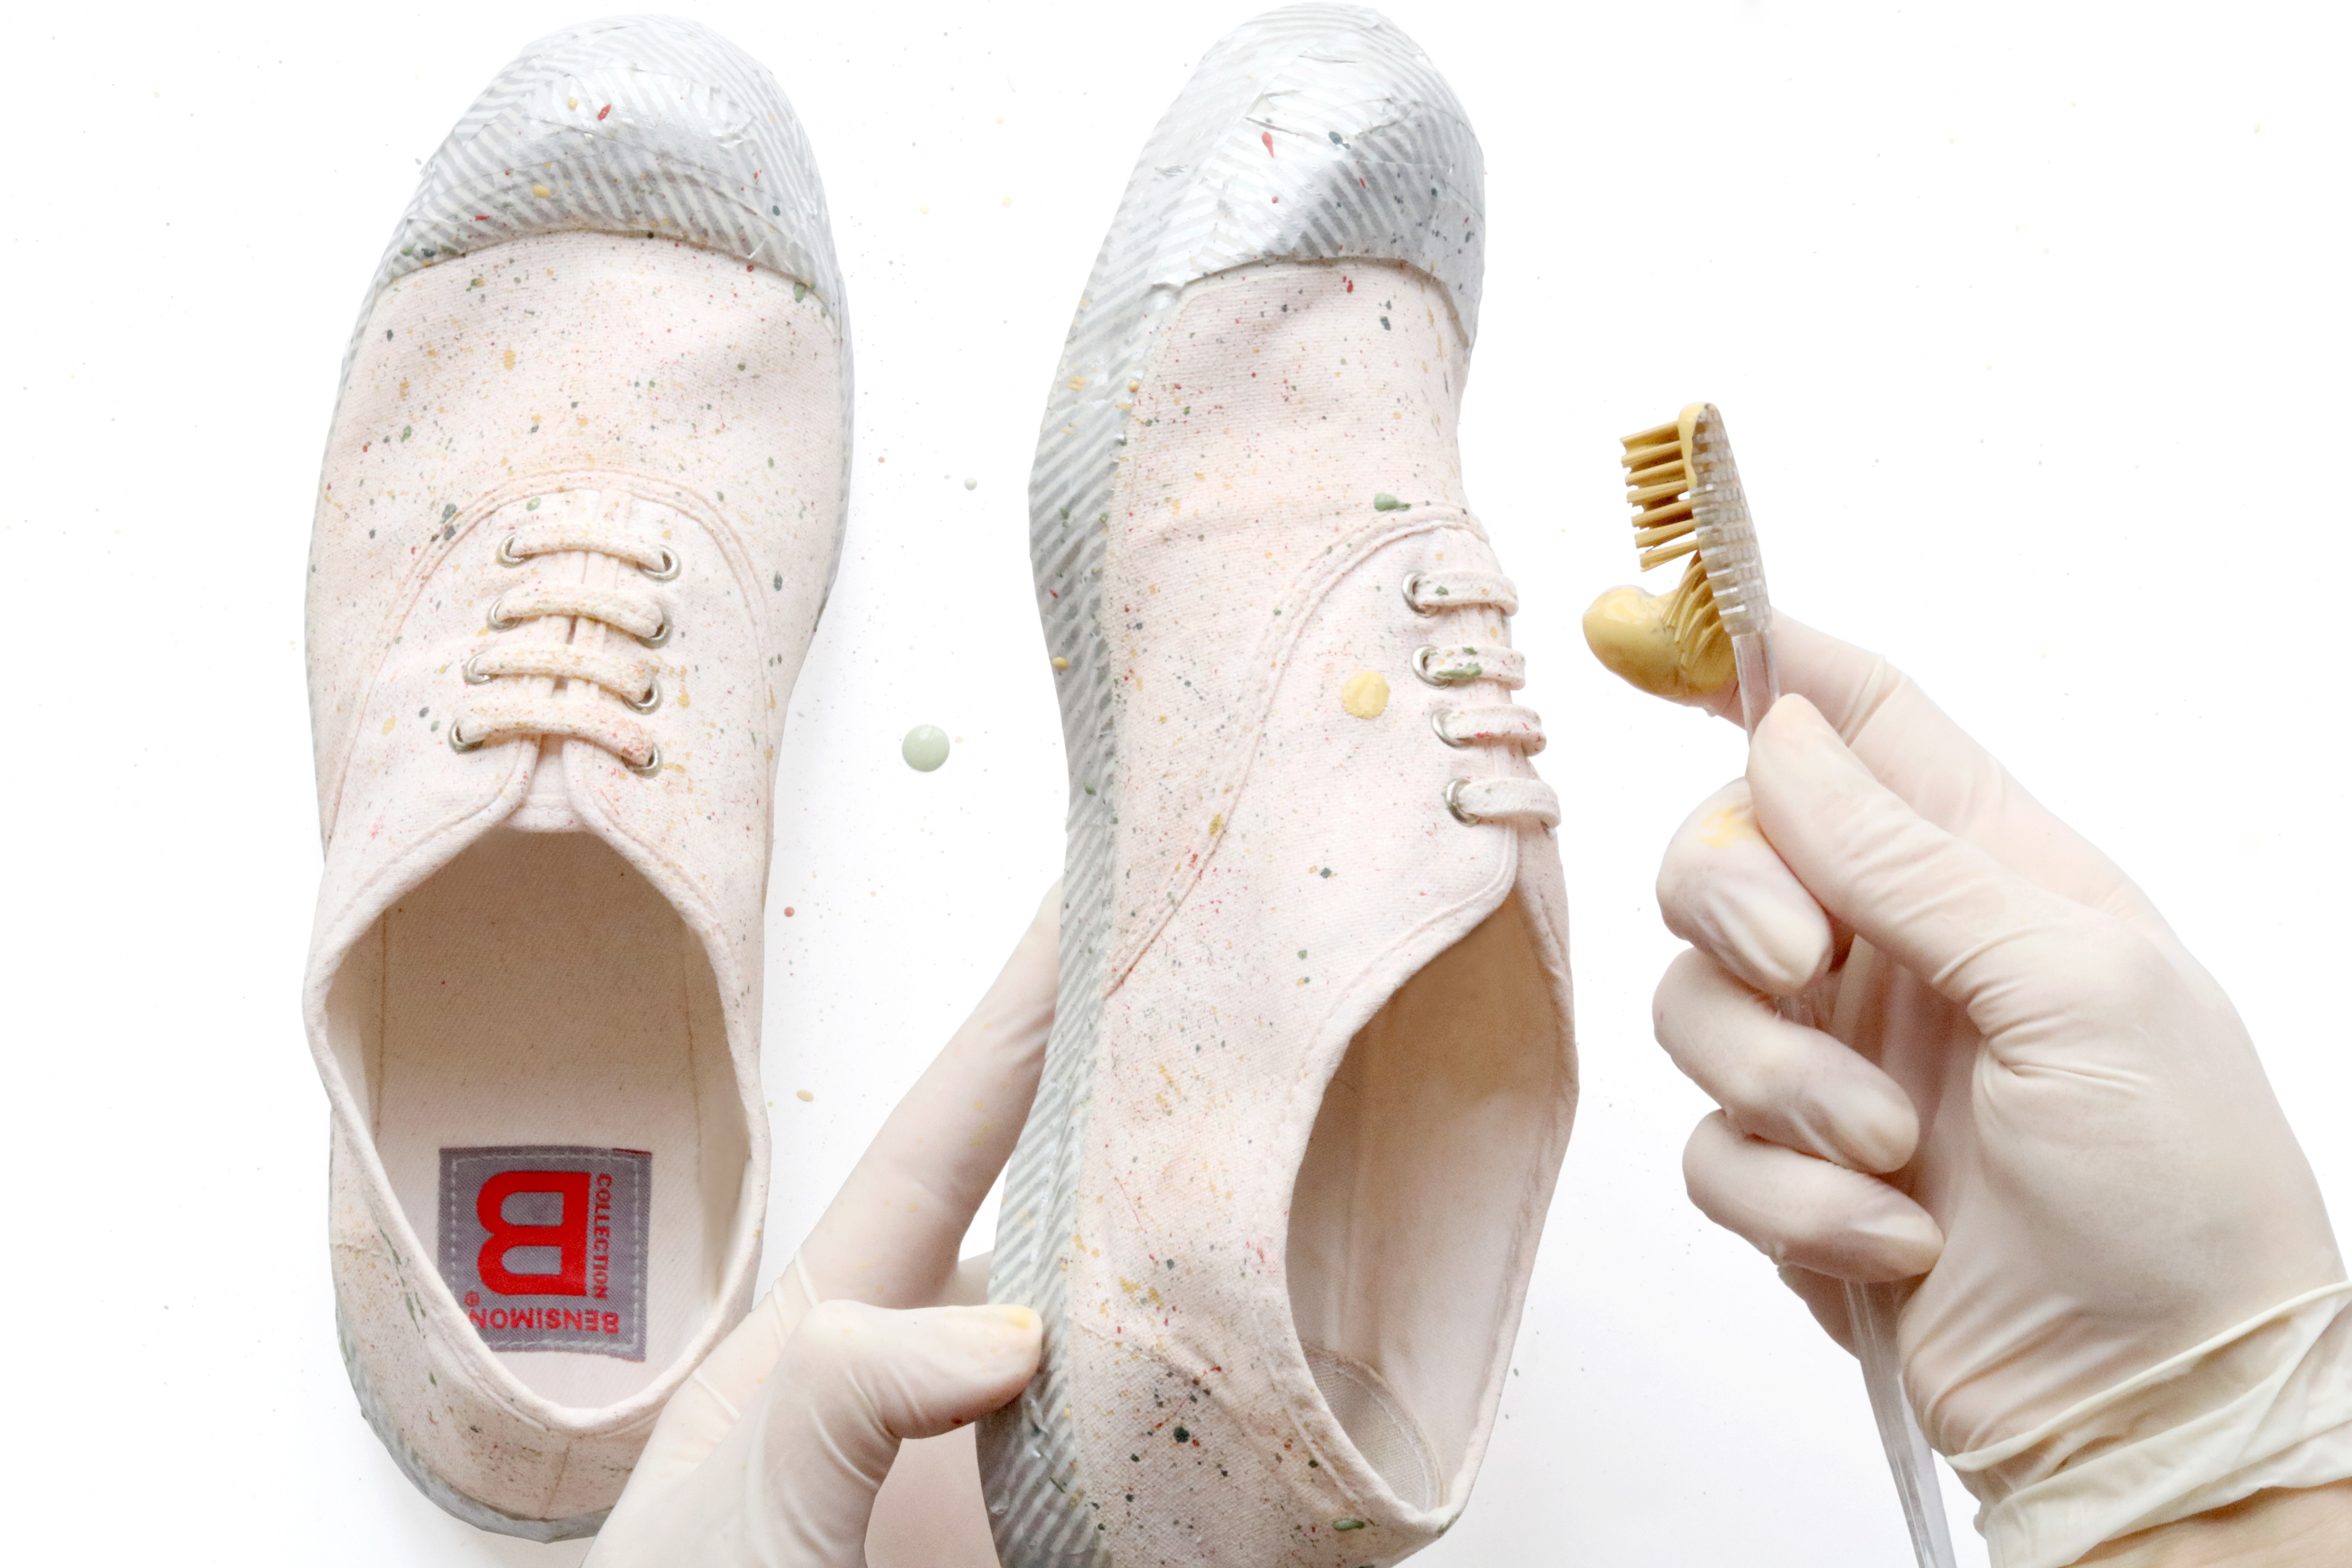 peindre-ses-chaussures-do-it-yourself